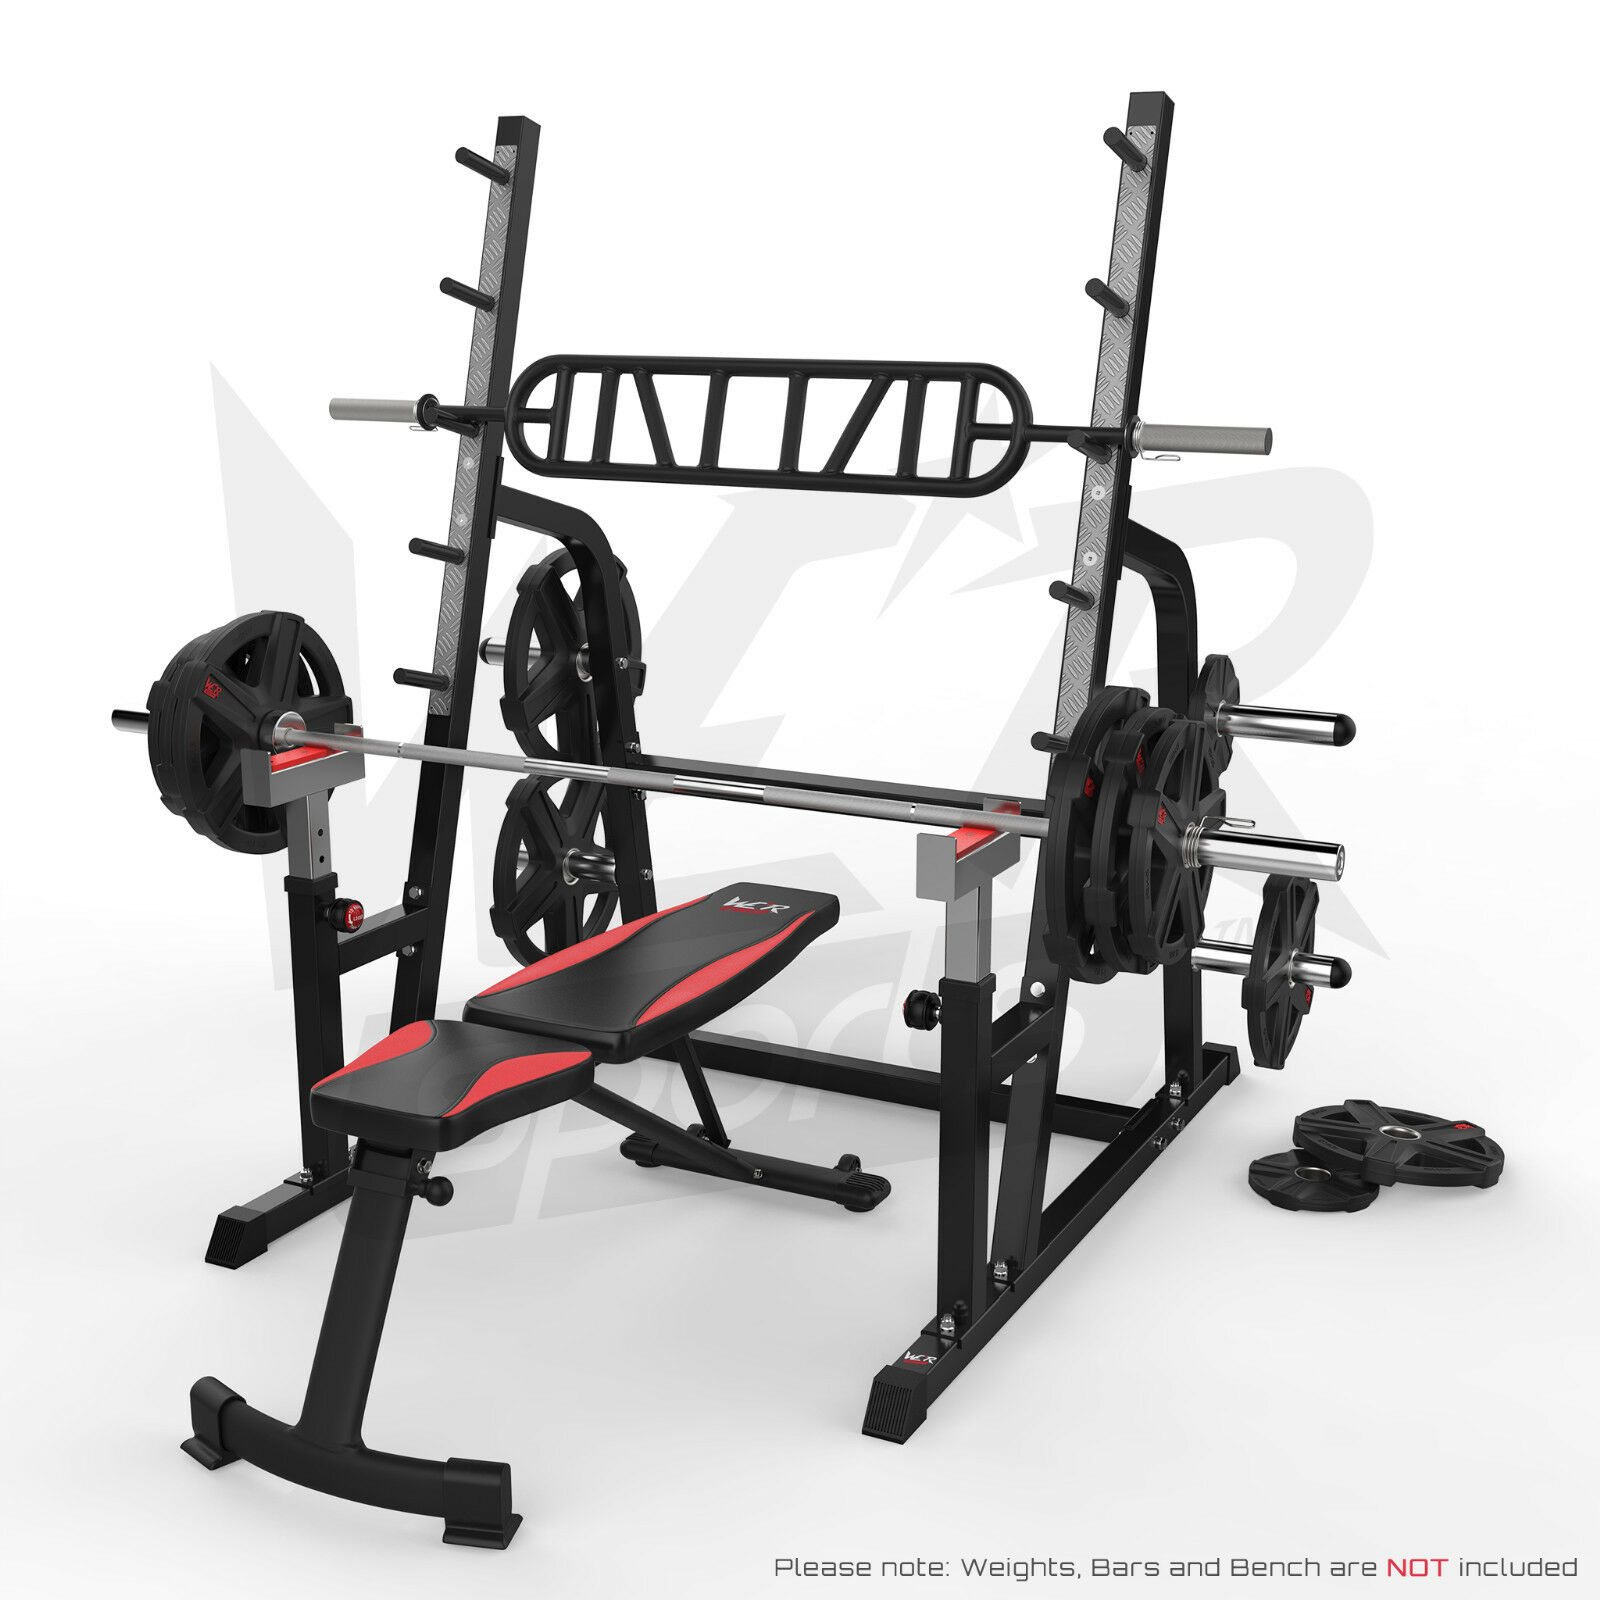 Olympic Squat Rack Adjustable Power Bench Press Barbell Stand Weight Lifting Eur 199 99